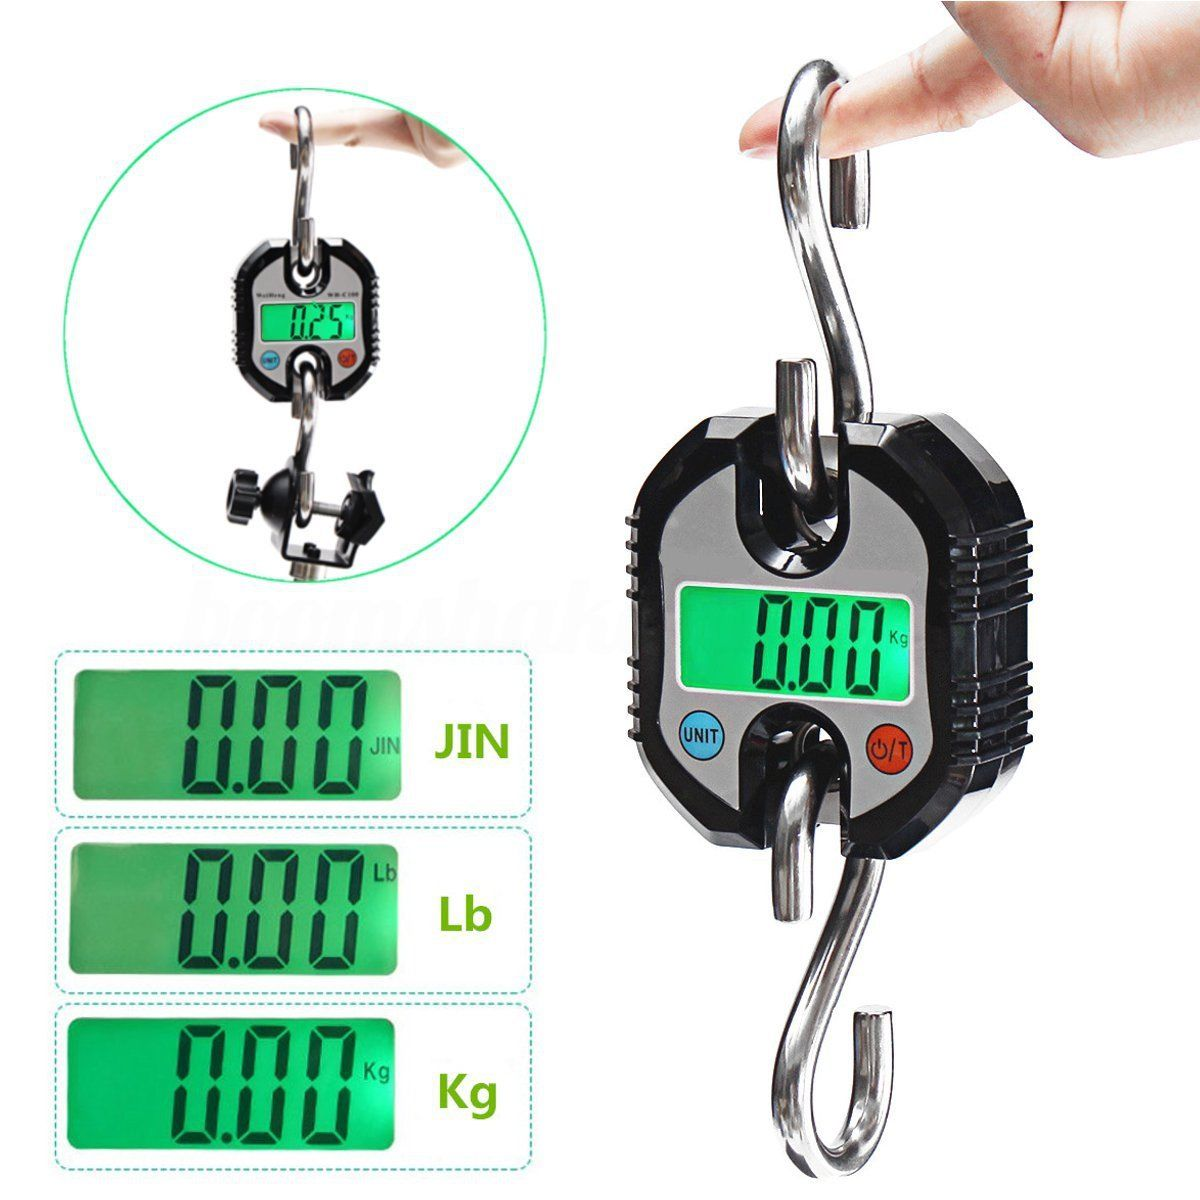 1pc 150kg Mini Crane Scale Mayitr LCD Digital Weight Electronic Hook Hanging Scales without Batteries portable mini crane scale 150kg lcd digital weight electronic hanging hook scales mayitr